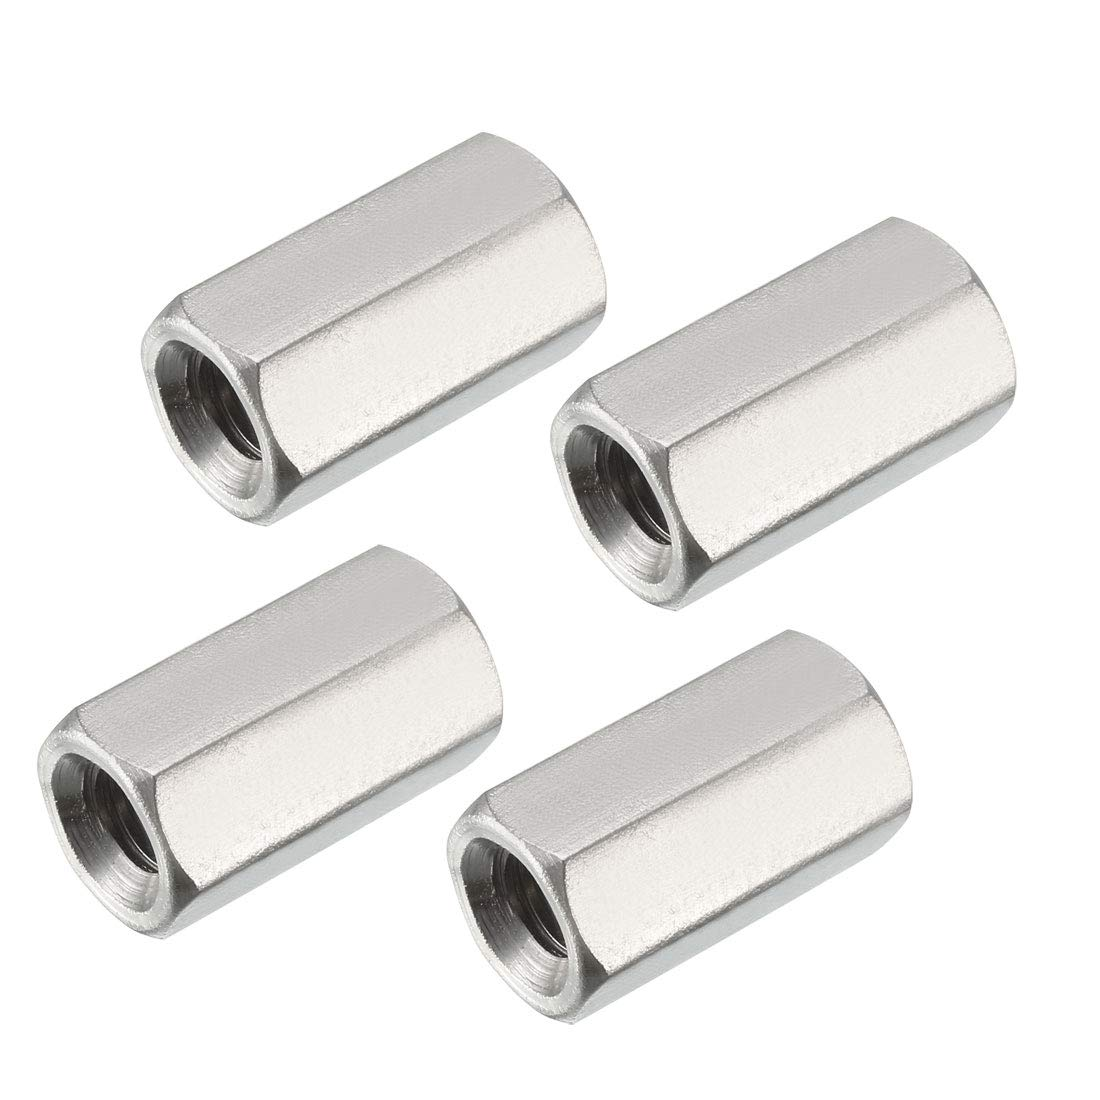 uxcell M8 X 1.25-Pitch 24mm Length 304 Stainless Steel Metric Hex Coupling Nut, 4pcs